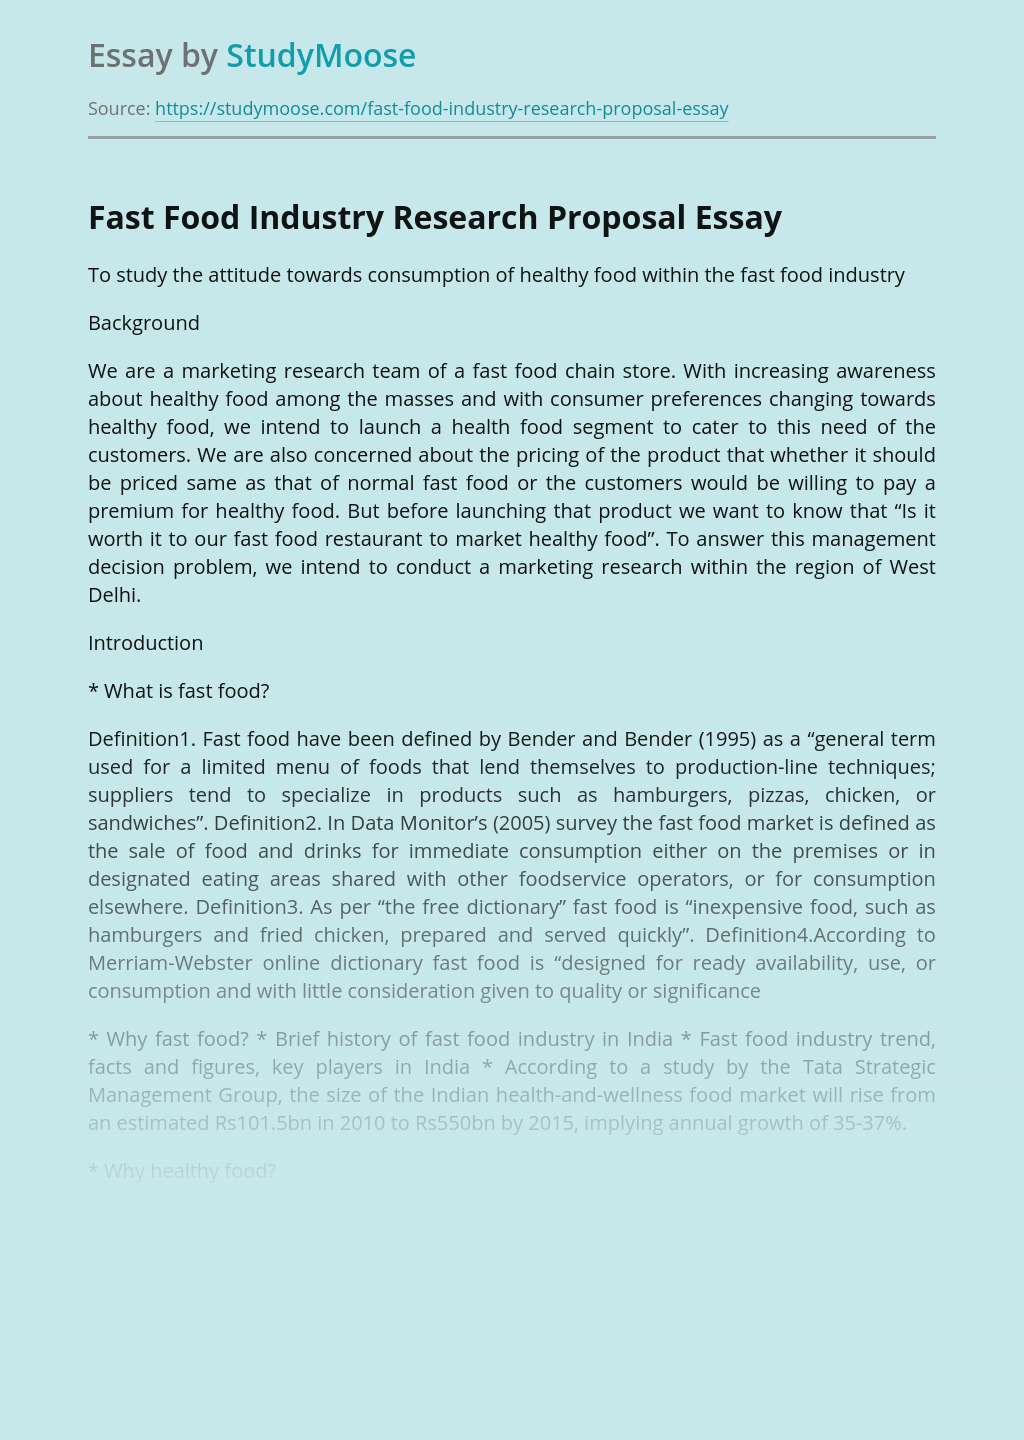 Fast Food Industry Research Proposal